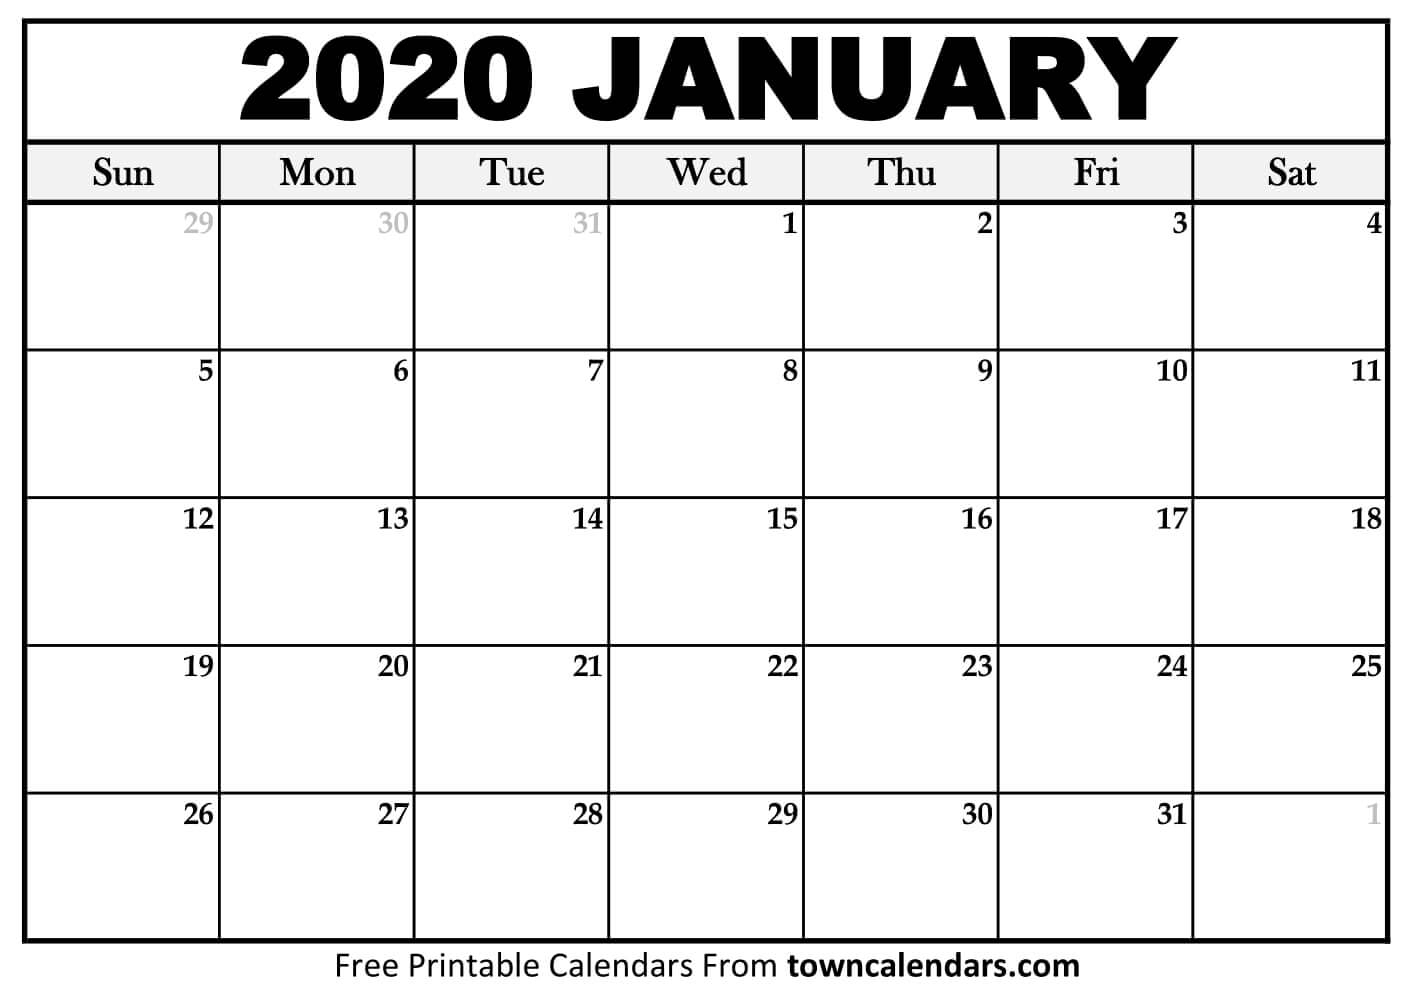 Printable January 2020 Calendar  Towncalendars pertaining to January 2020 Calendar Blank